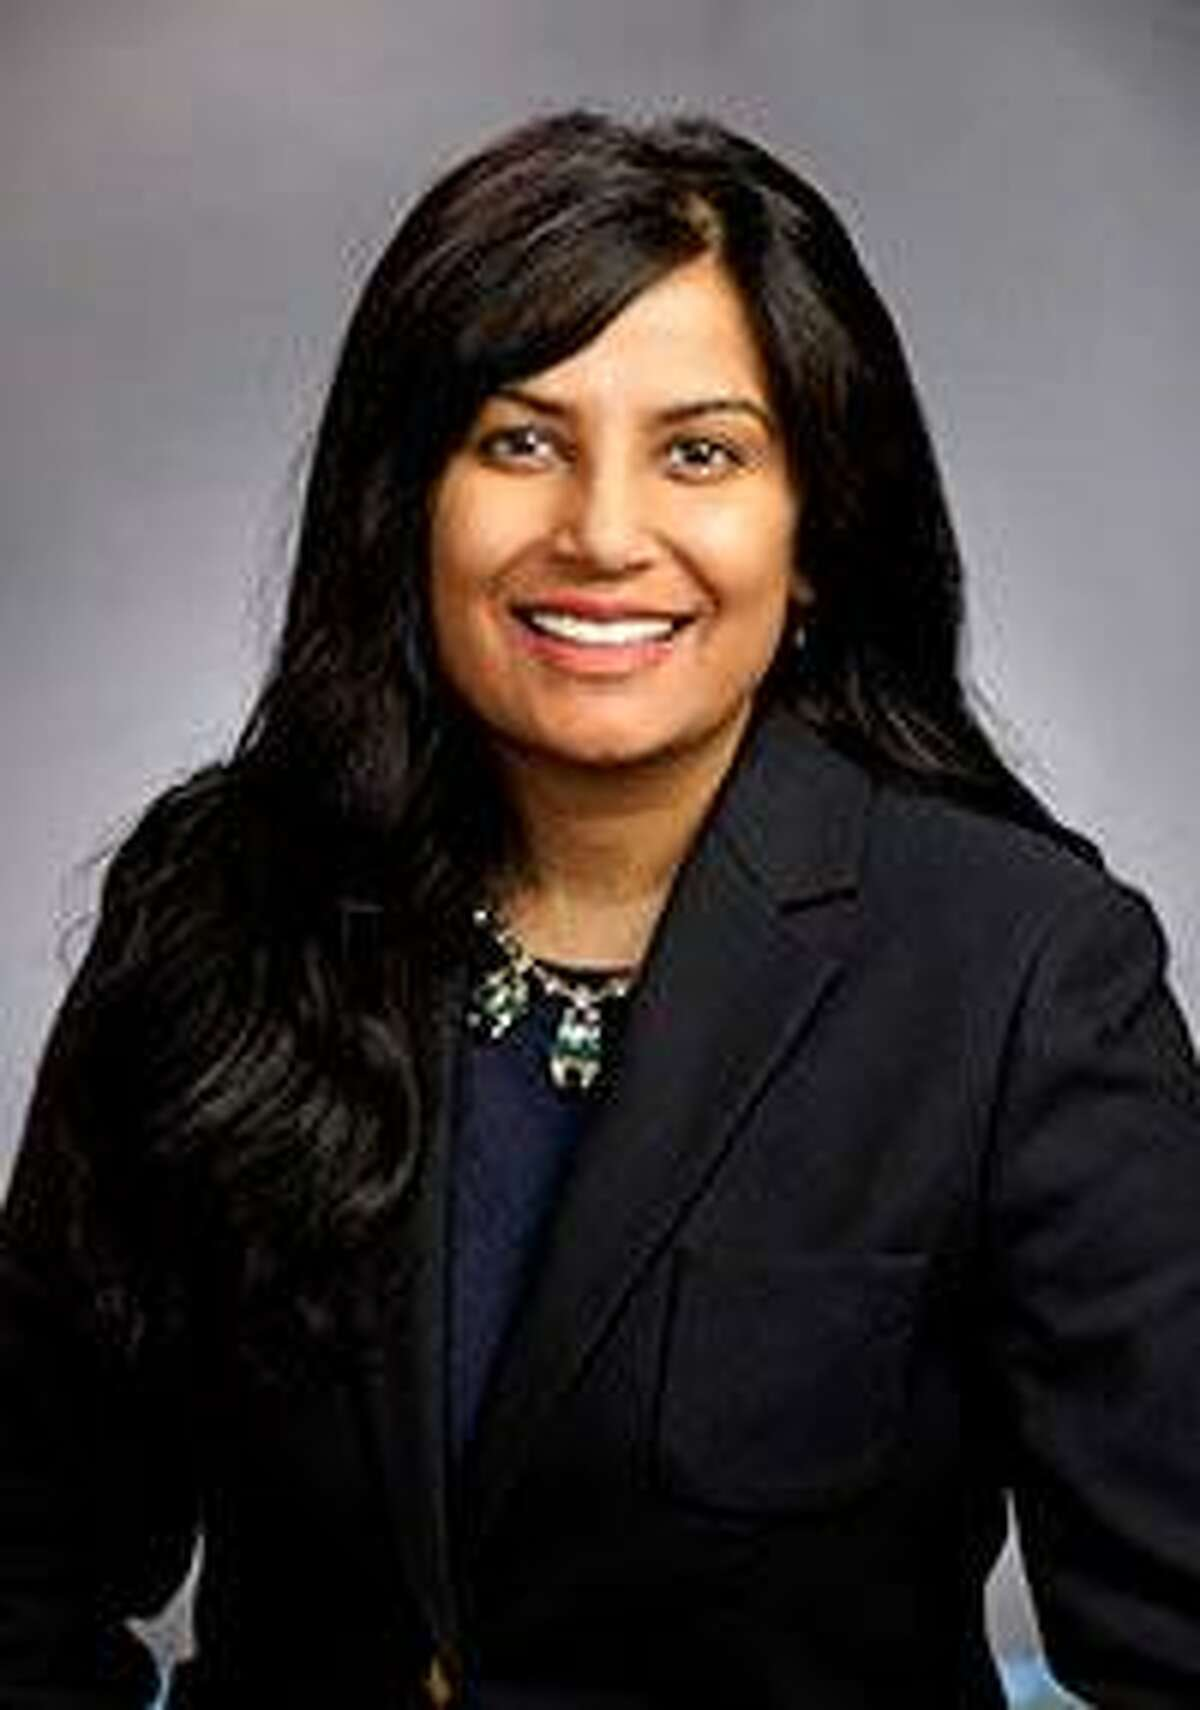 Seelpa Keshvala has been president of Lone Star College-CyFair since March 2016.